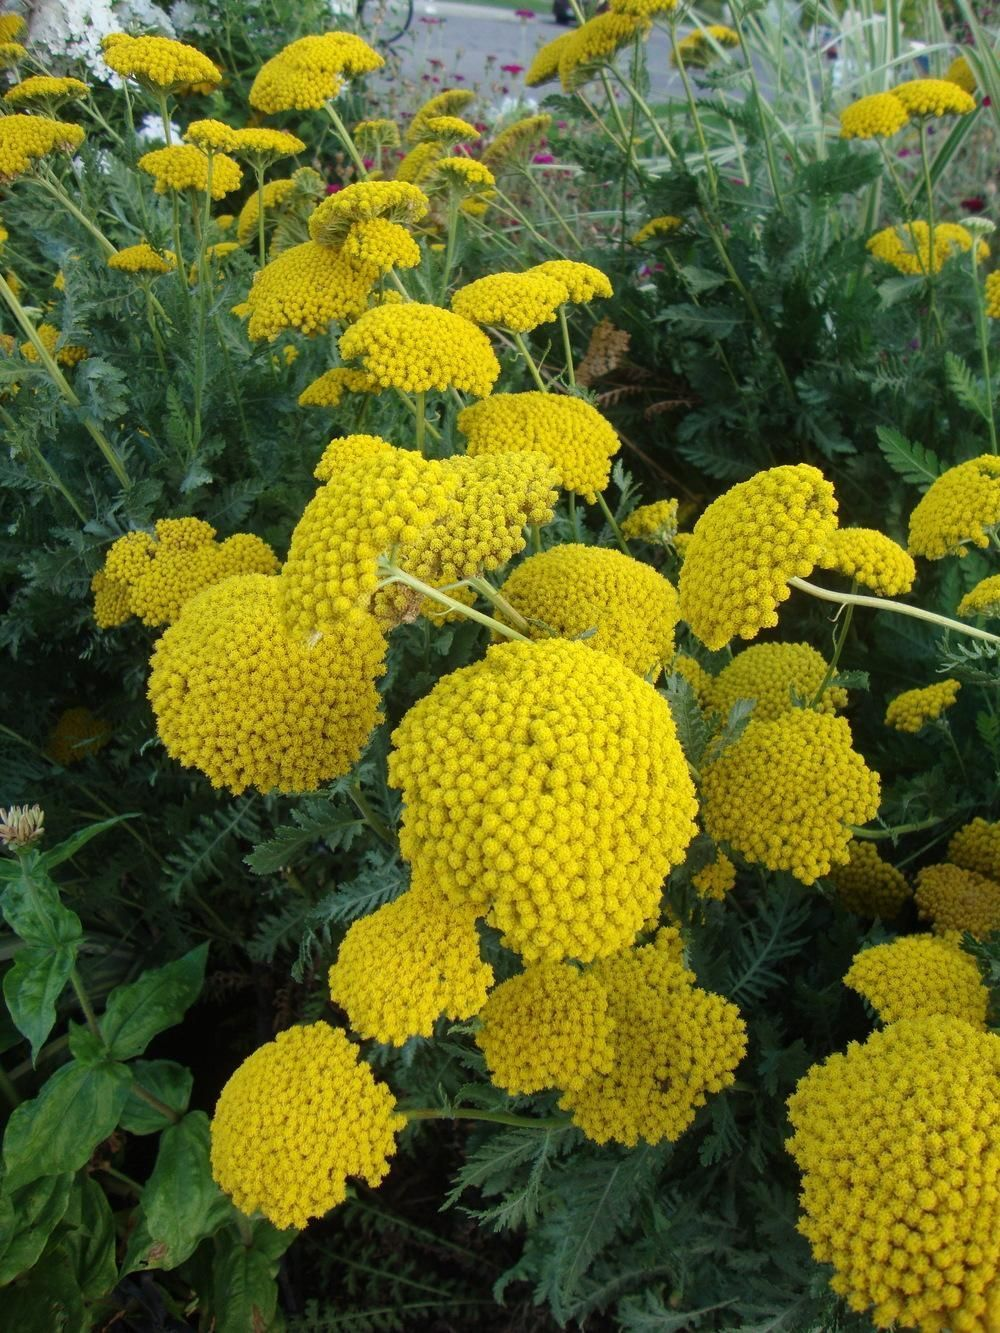 Plant More Yarrow Achillea Moonshine This Year Mushroomgrowhouse Yarrow Plant Plants Flowering Trees